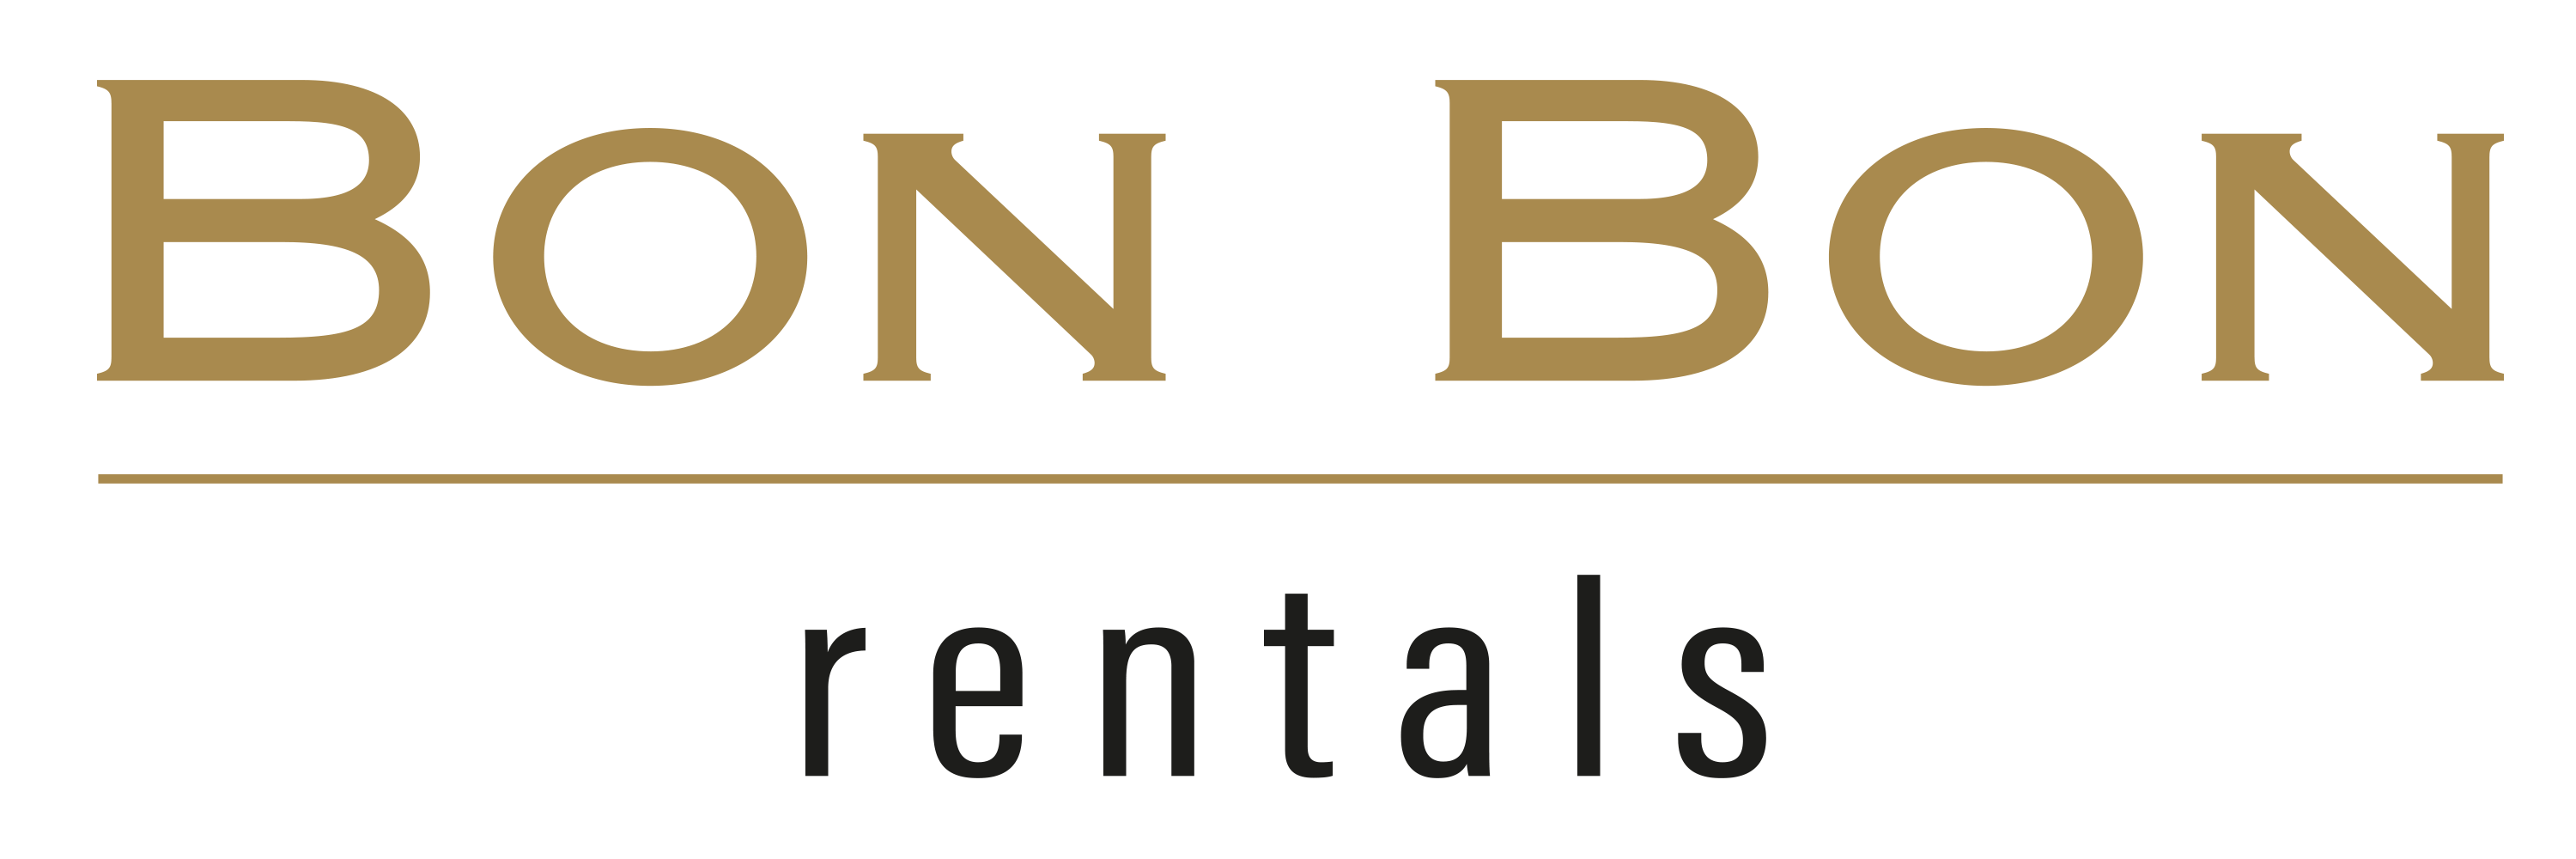 Bon Bon catering & events Logo